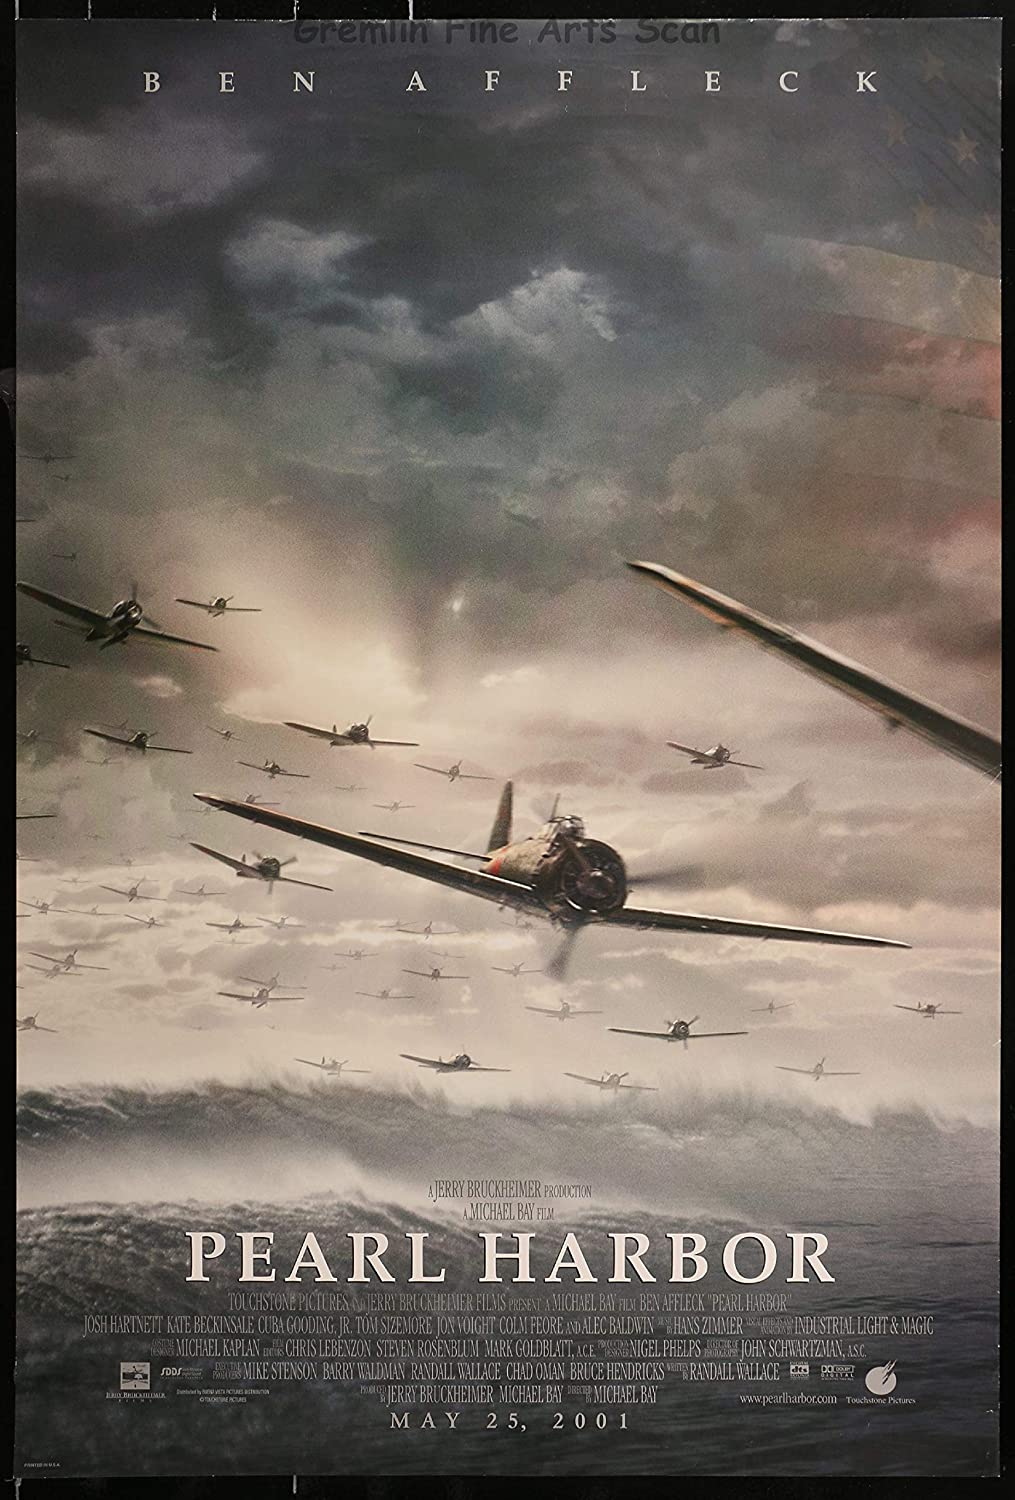 Pearl Harbor 2001 Theatrical Movie Poster Directed By Michael Bay Starring Ben Affleck Kate Beckinsale And Josh Harnett At Amazon S Entertainment Collectibles Store